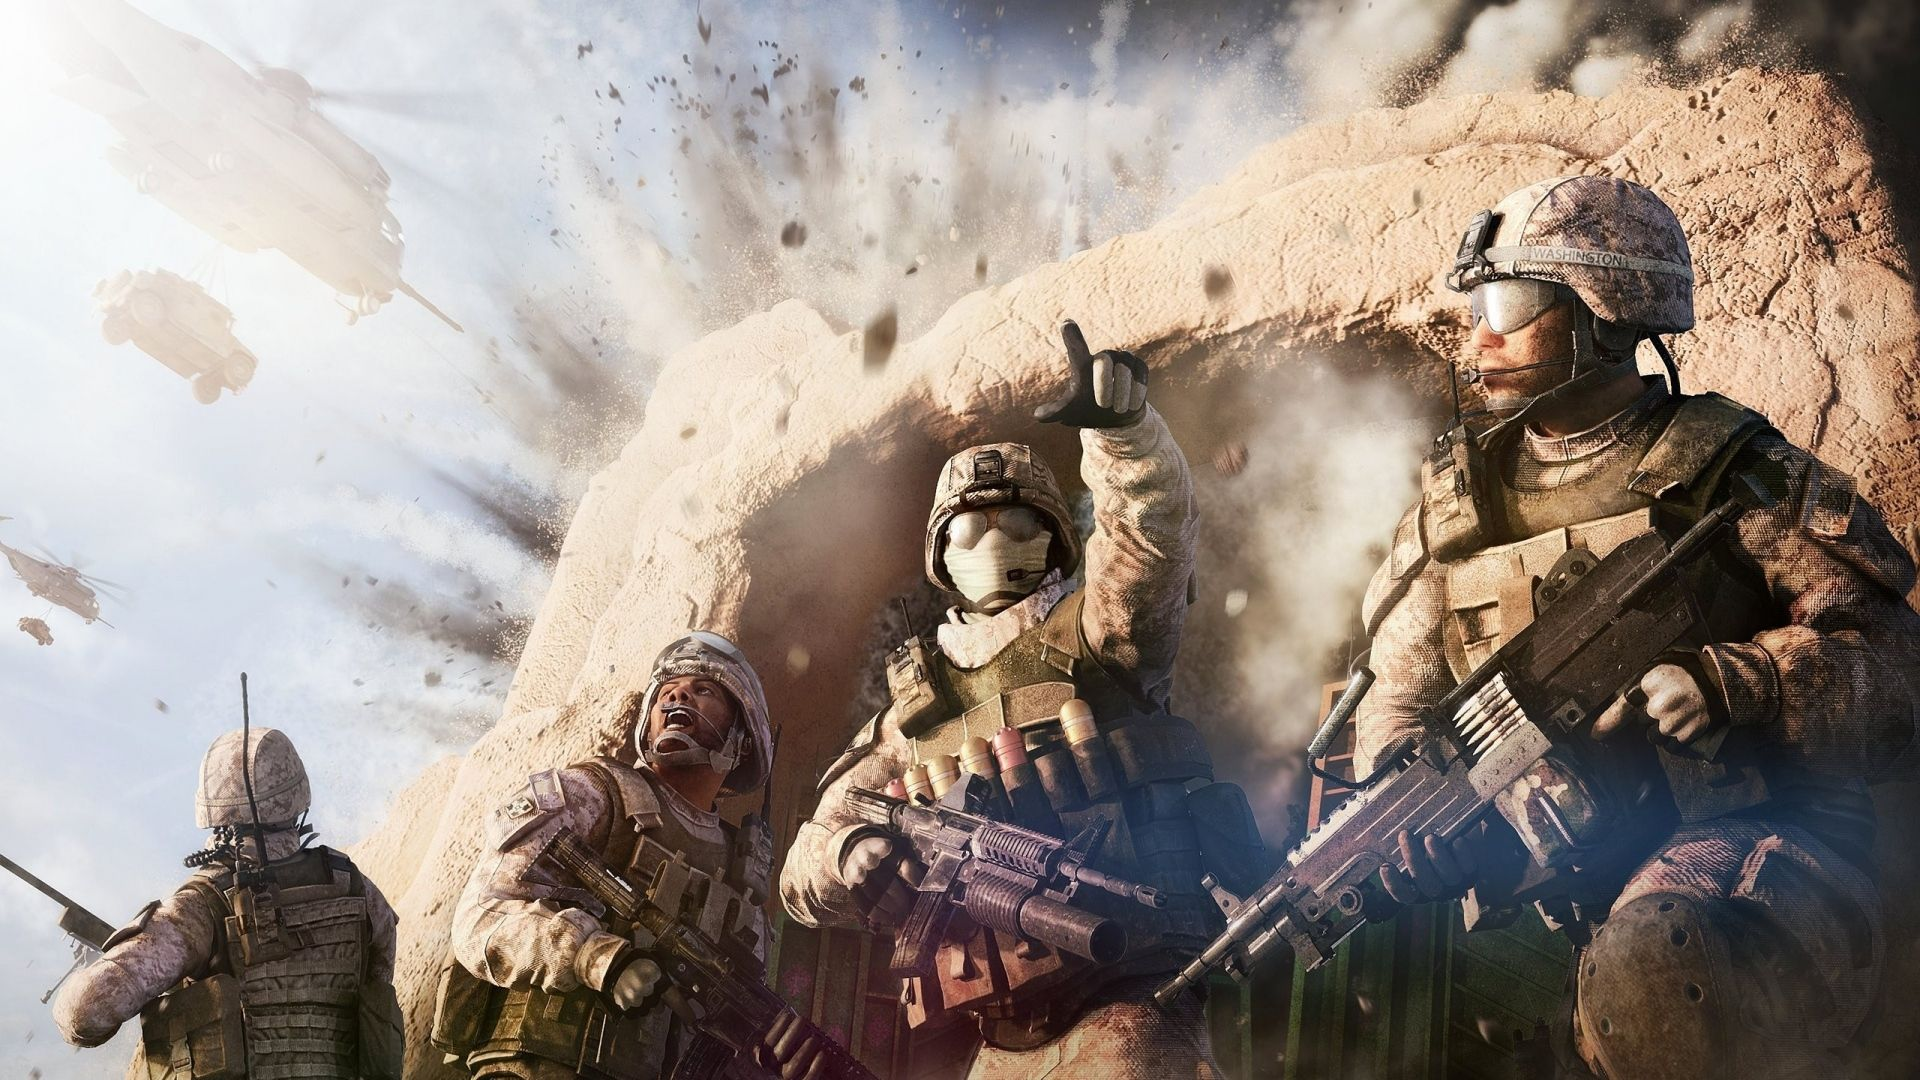 Download Wallpaper 1920x1080 Tom Clancys Ghost Recon Future Usmc Wallpaper Medal Of Honor Army Wallpaper